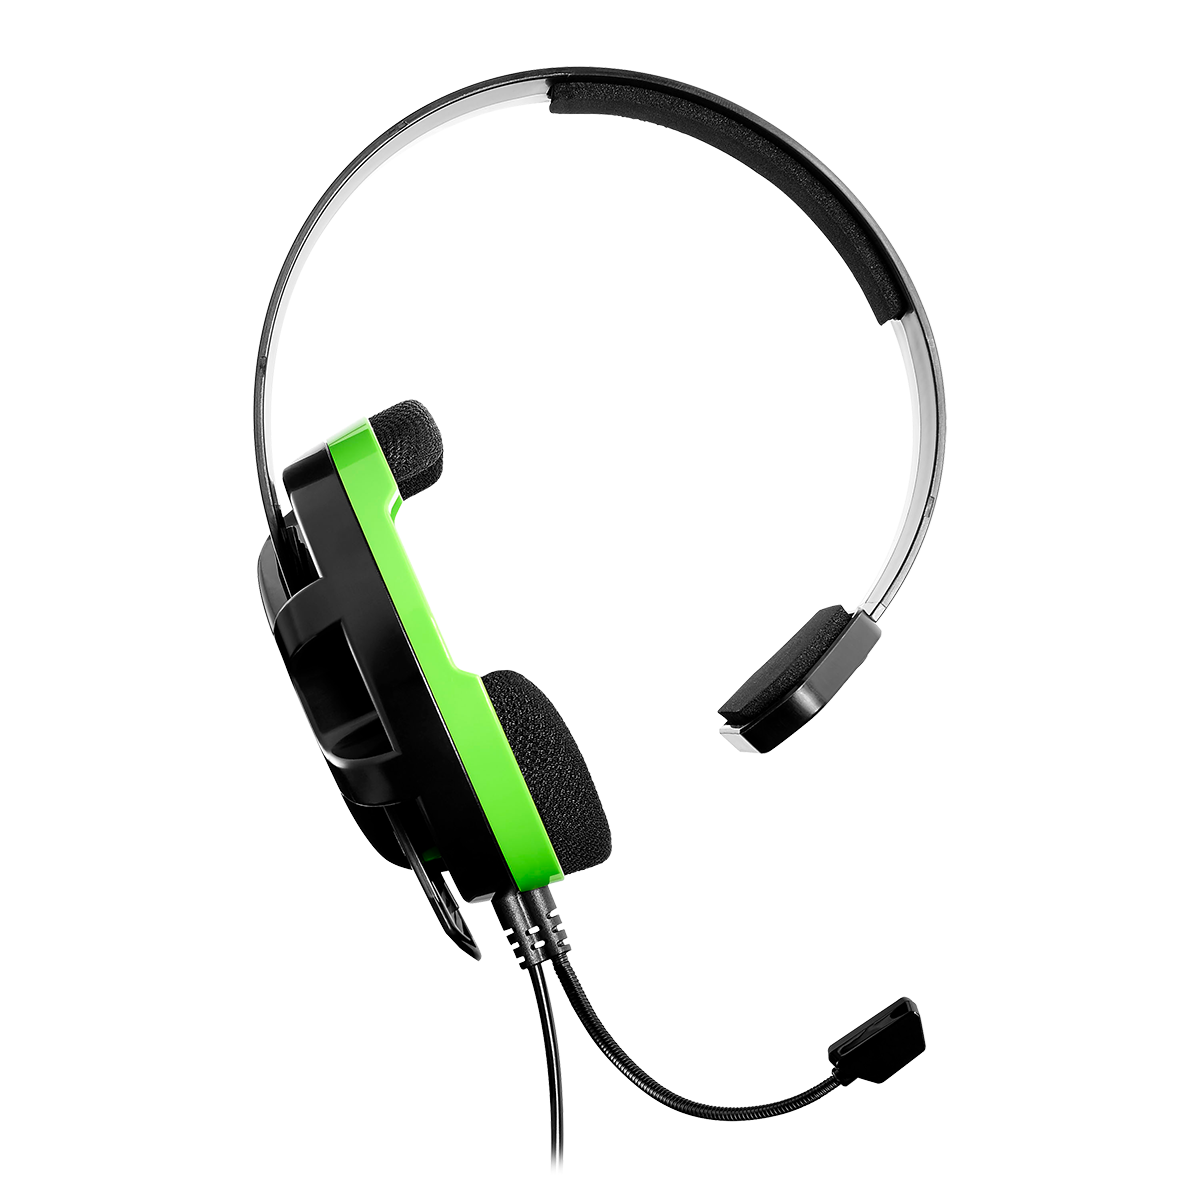 Turtle beach recon chat headset for xbox one not working